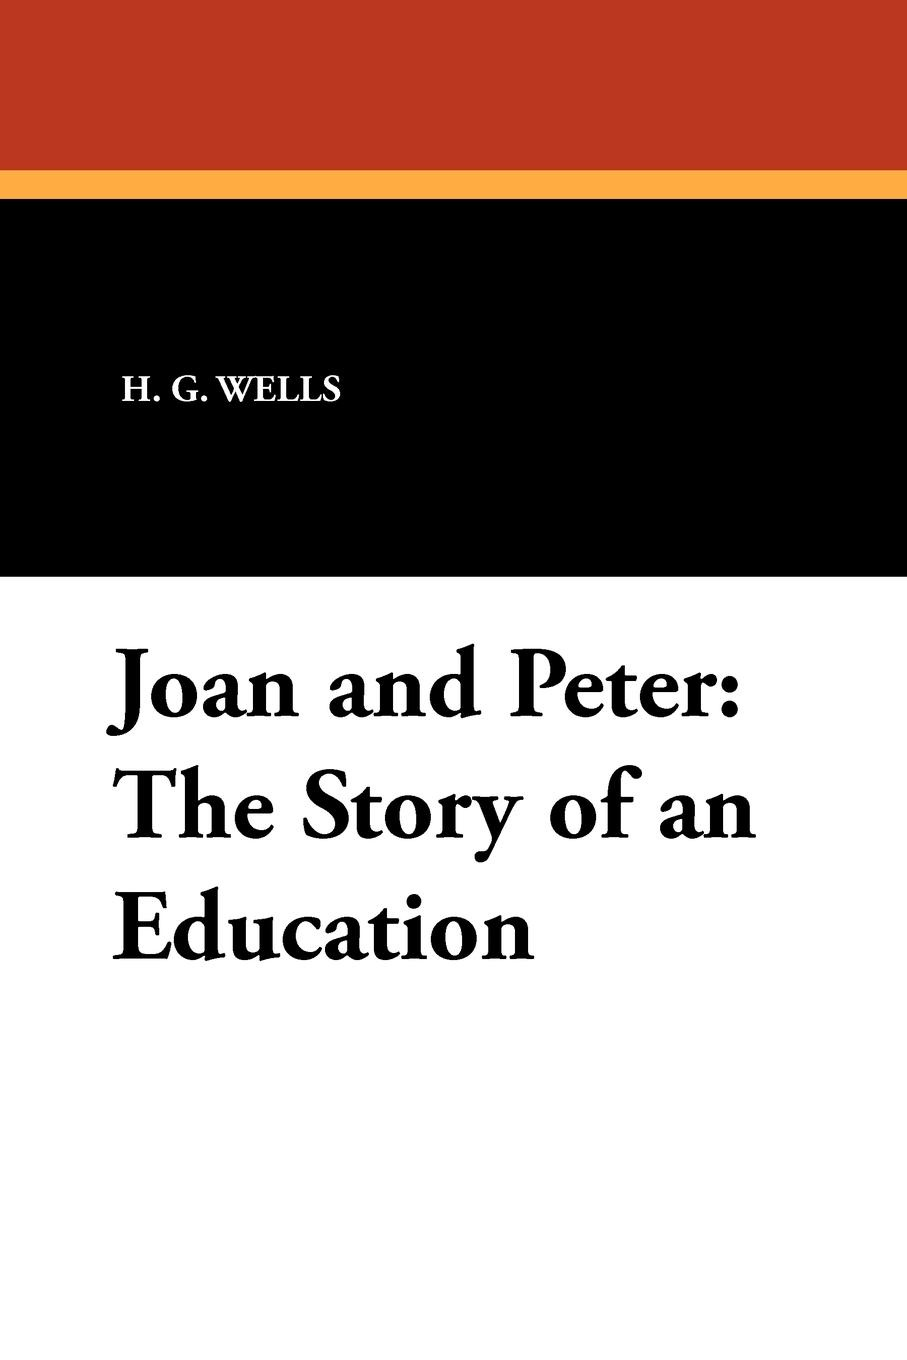 H. G. Wells Joan and Peter. The Story of an Education gardner edmund g the story of siena and san gimignano